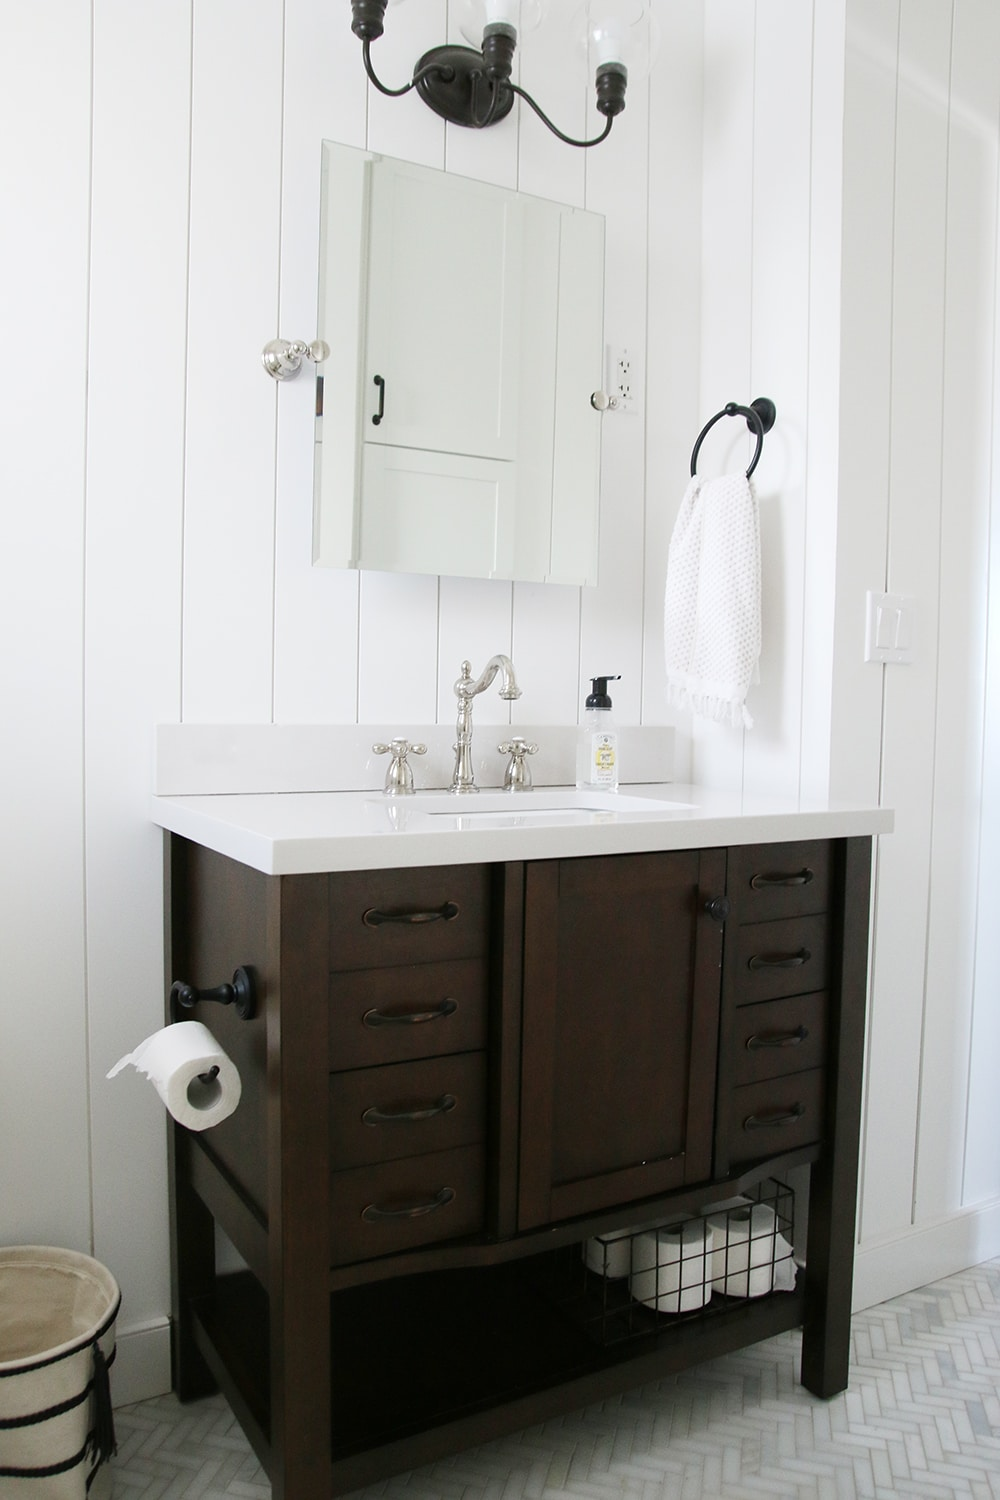 The Most Diy Friendly Bathroom Renovation We Ve Ever Done